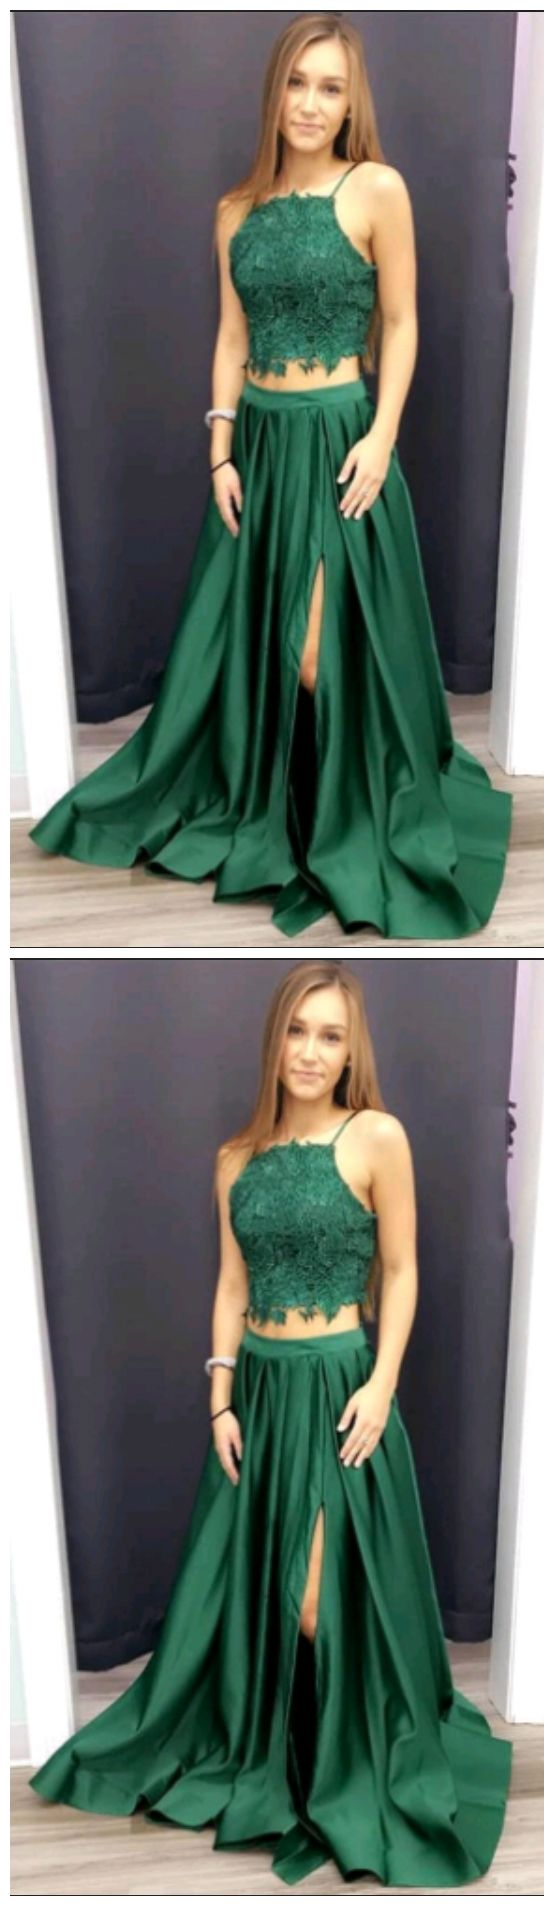 Spaghetti Straps Prom Dresses,Two Pieces Prom Gown,A-Line